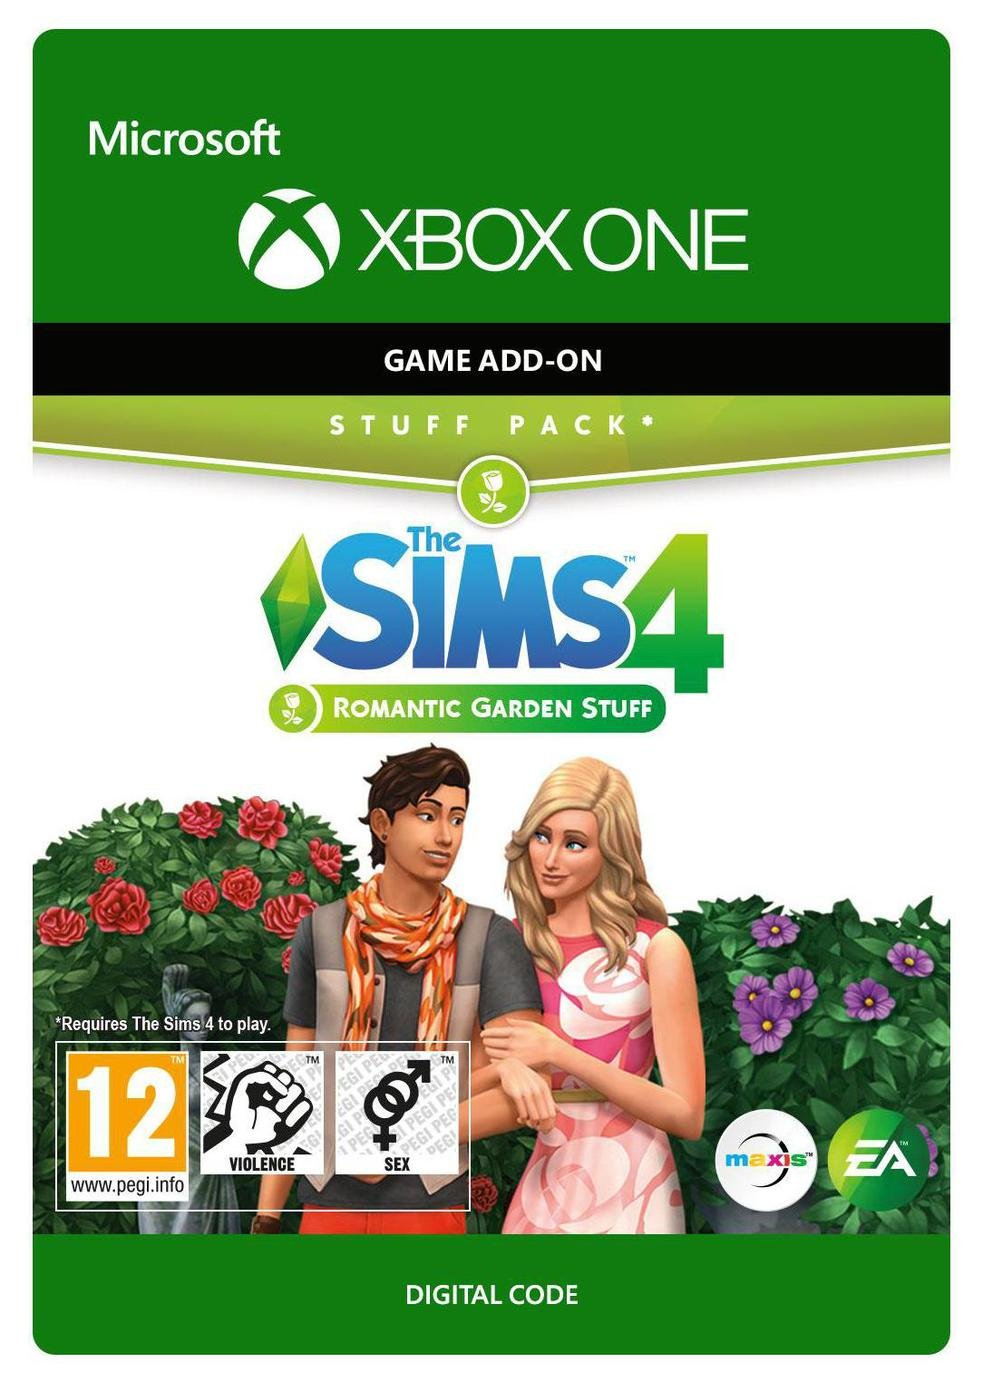 The Sims 4 Romantic Garden Expansion Pack Xbox One from Microsoft